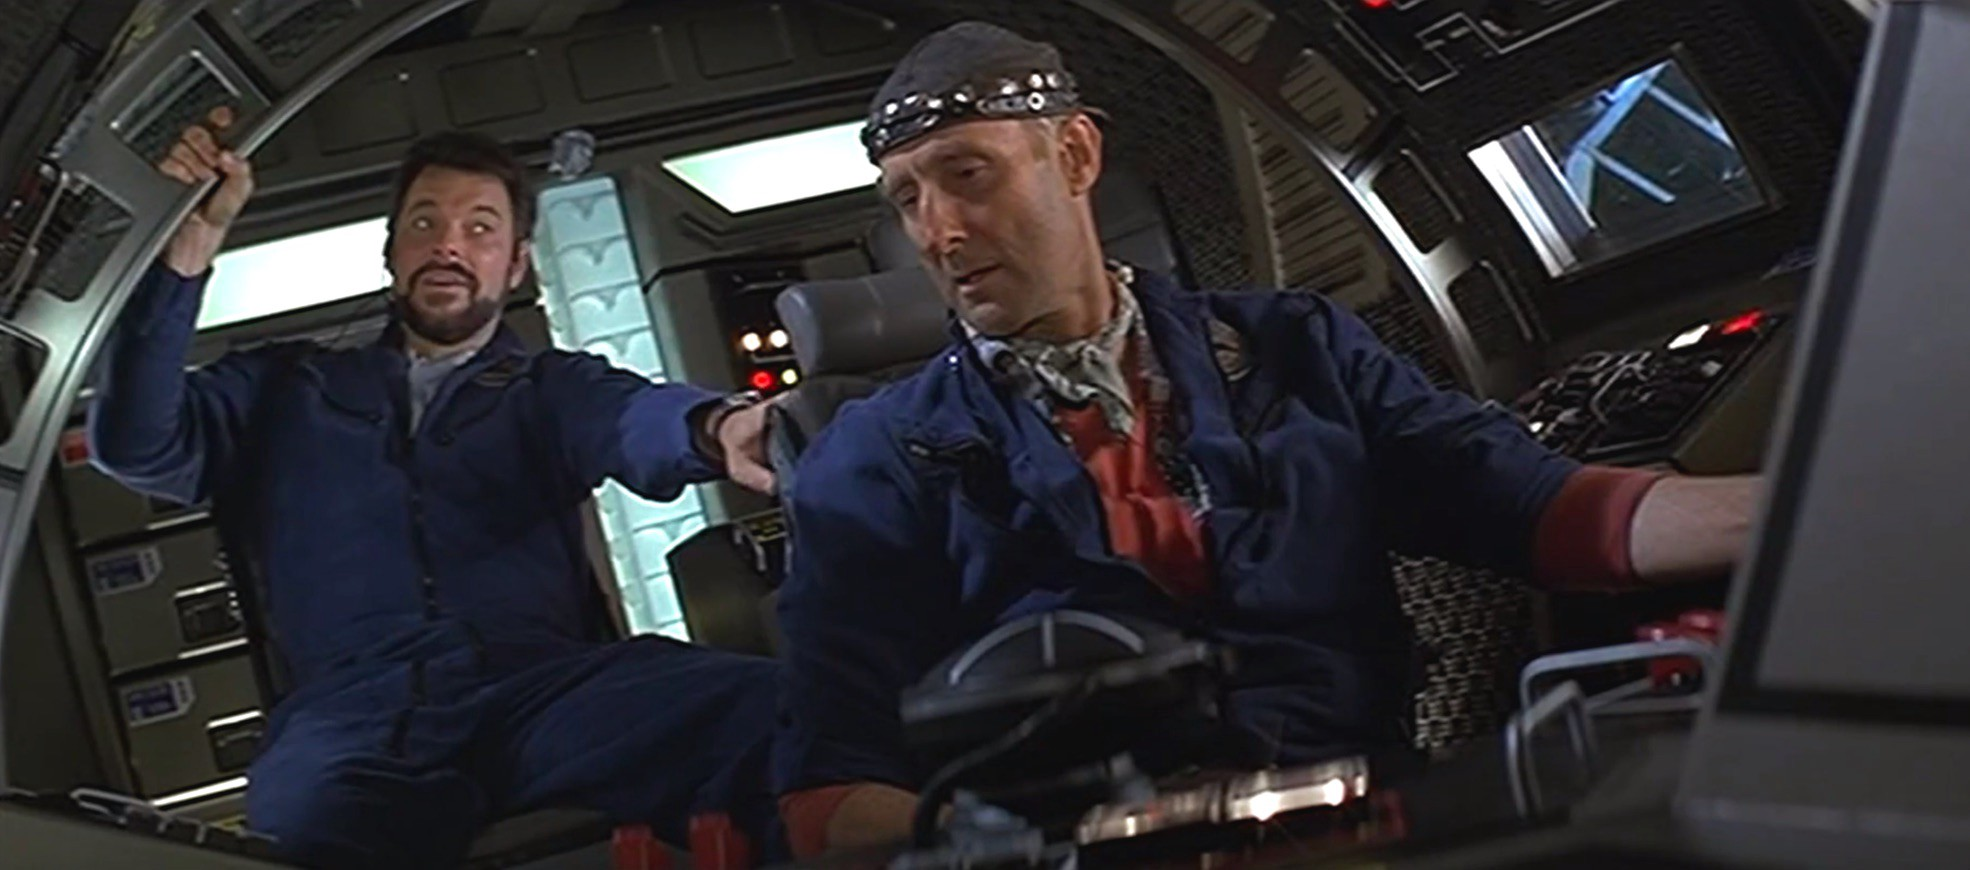 Two men talking to each other in the cockpit of a rocket ship, from Paramount Pictures' 1996 film Star Trek: First Contact